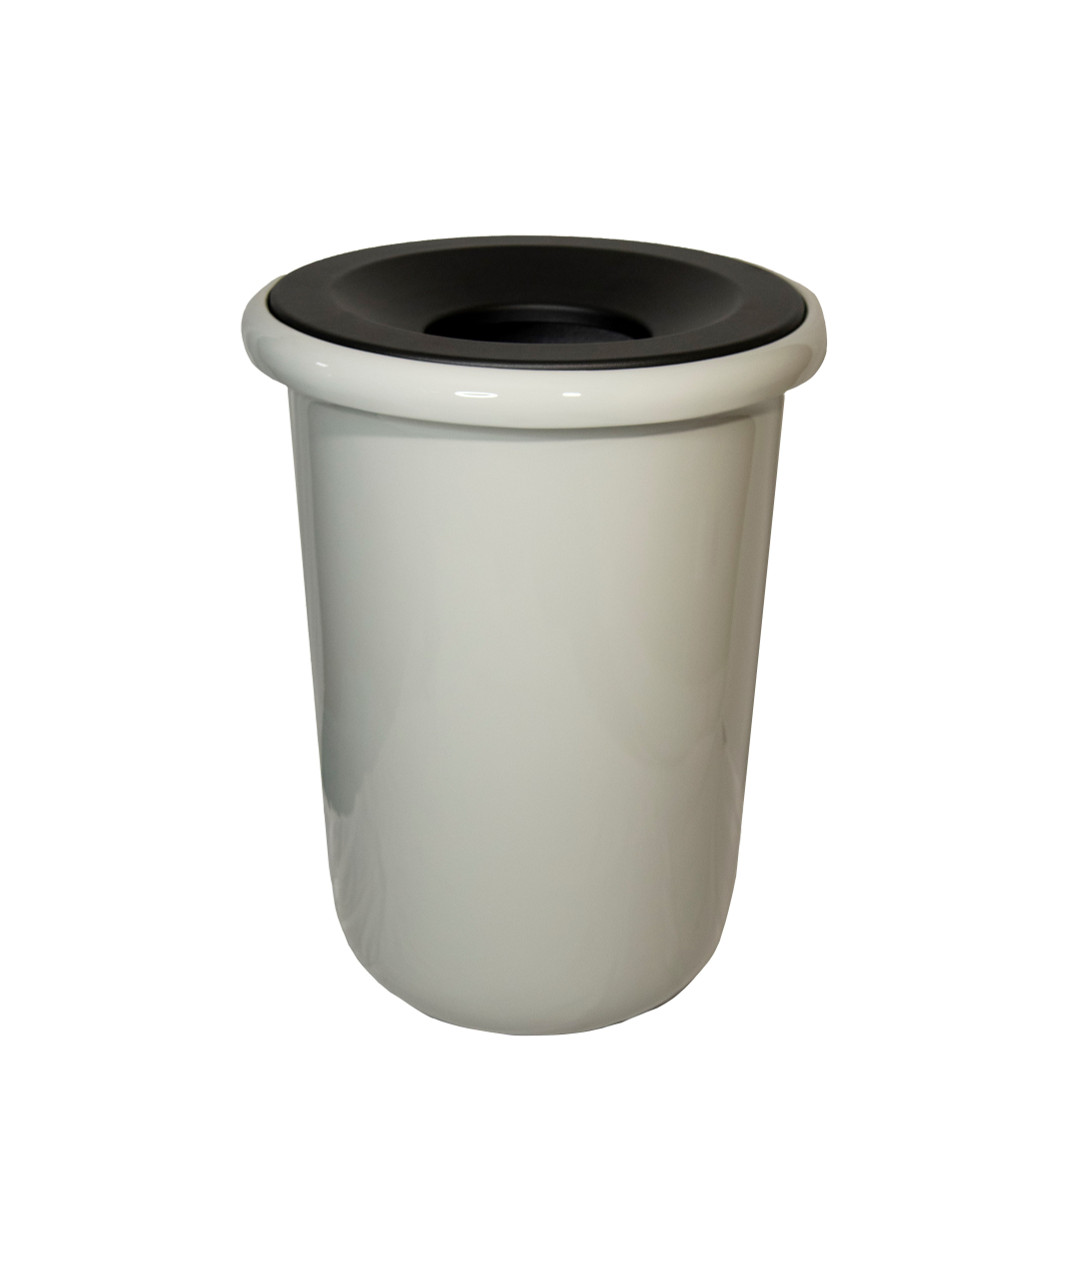 32 Gallon Fiberglass BOSTON Decorative Trash Receptacle